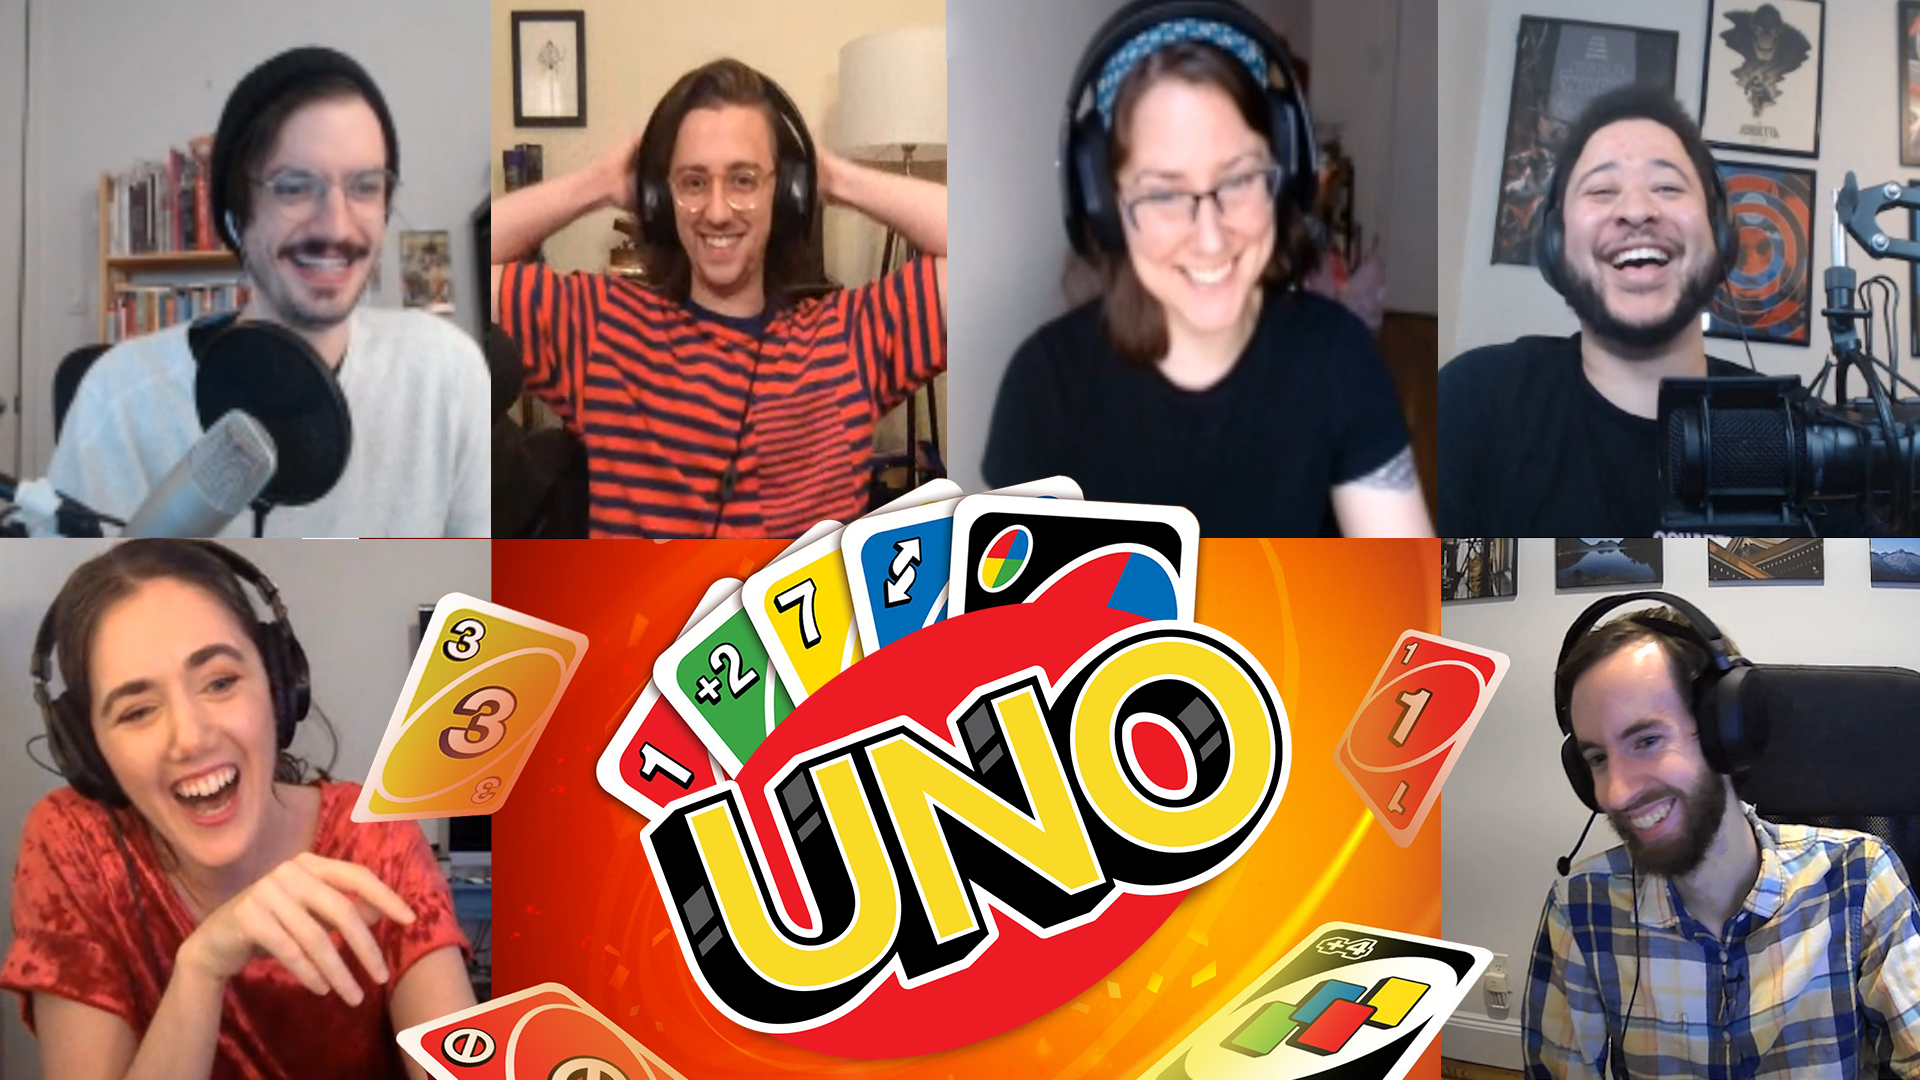 Six excited people in video chat surround a logo for the card game UNO.